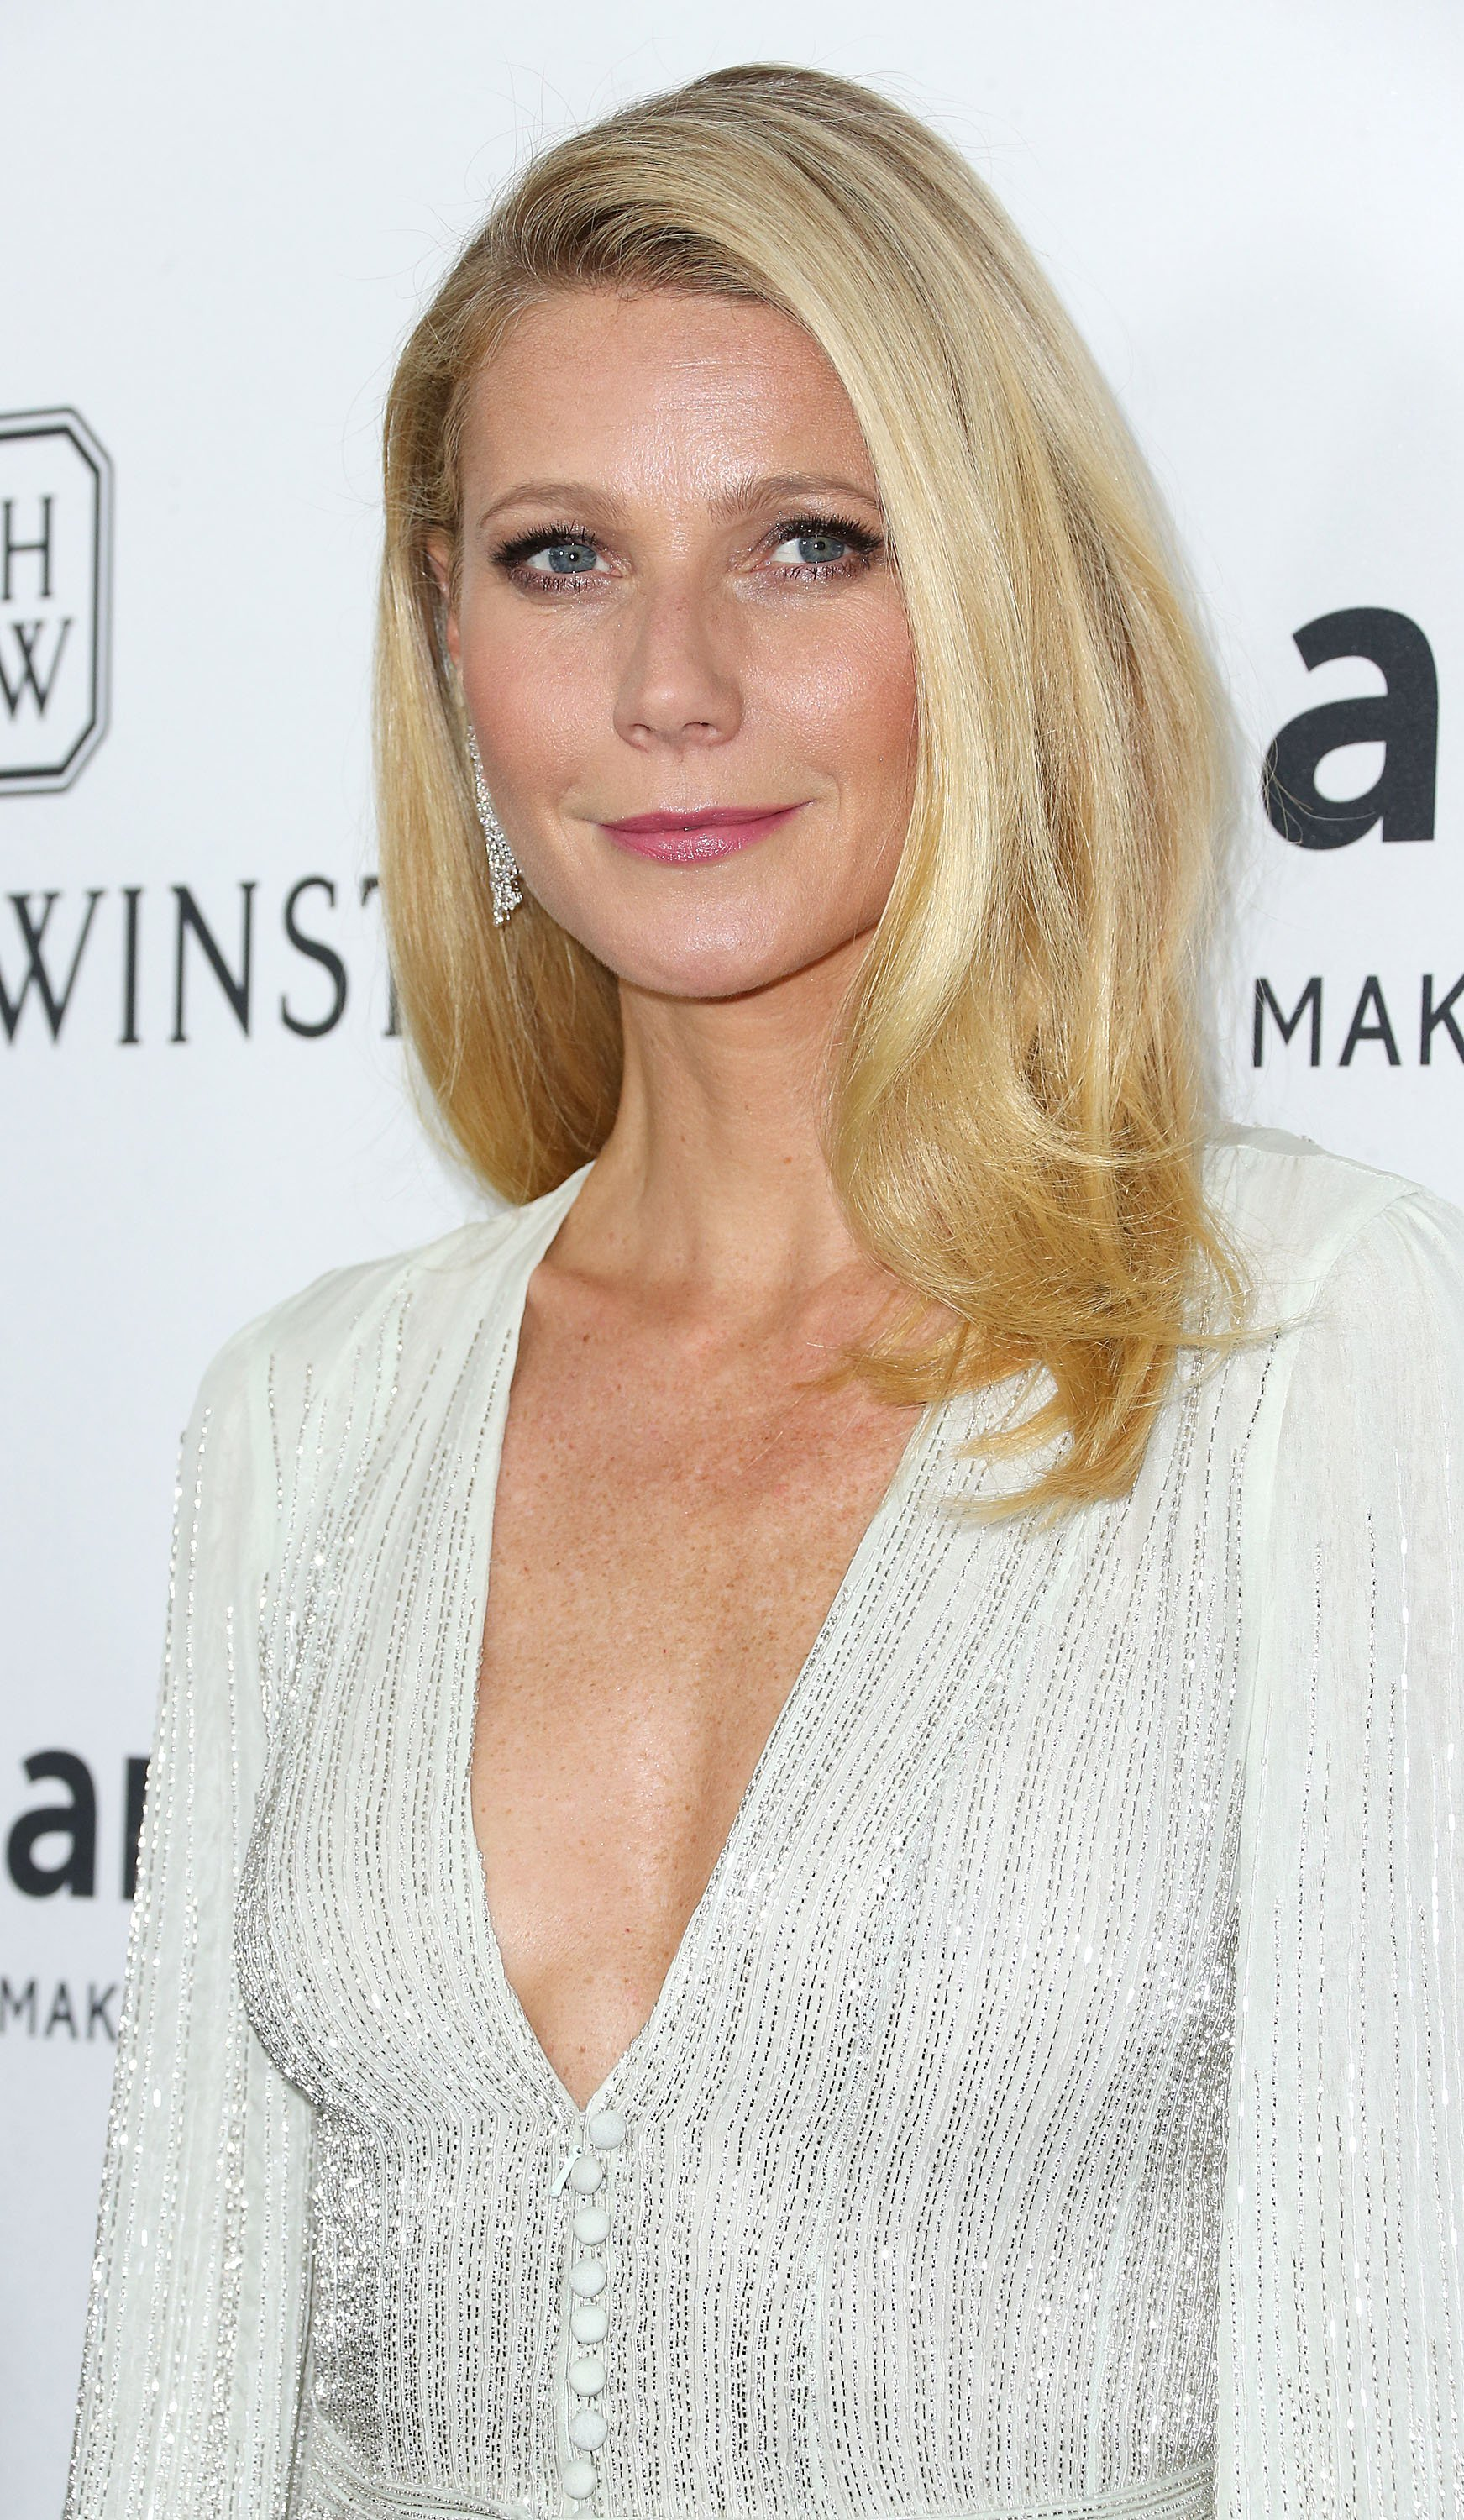 Gwyneth Paltrow pictured at amfAR's Inspiration Gala Los Angeles at Milk Studios, 2015, Hollywood, California.   Photo: Getty Images